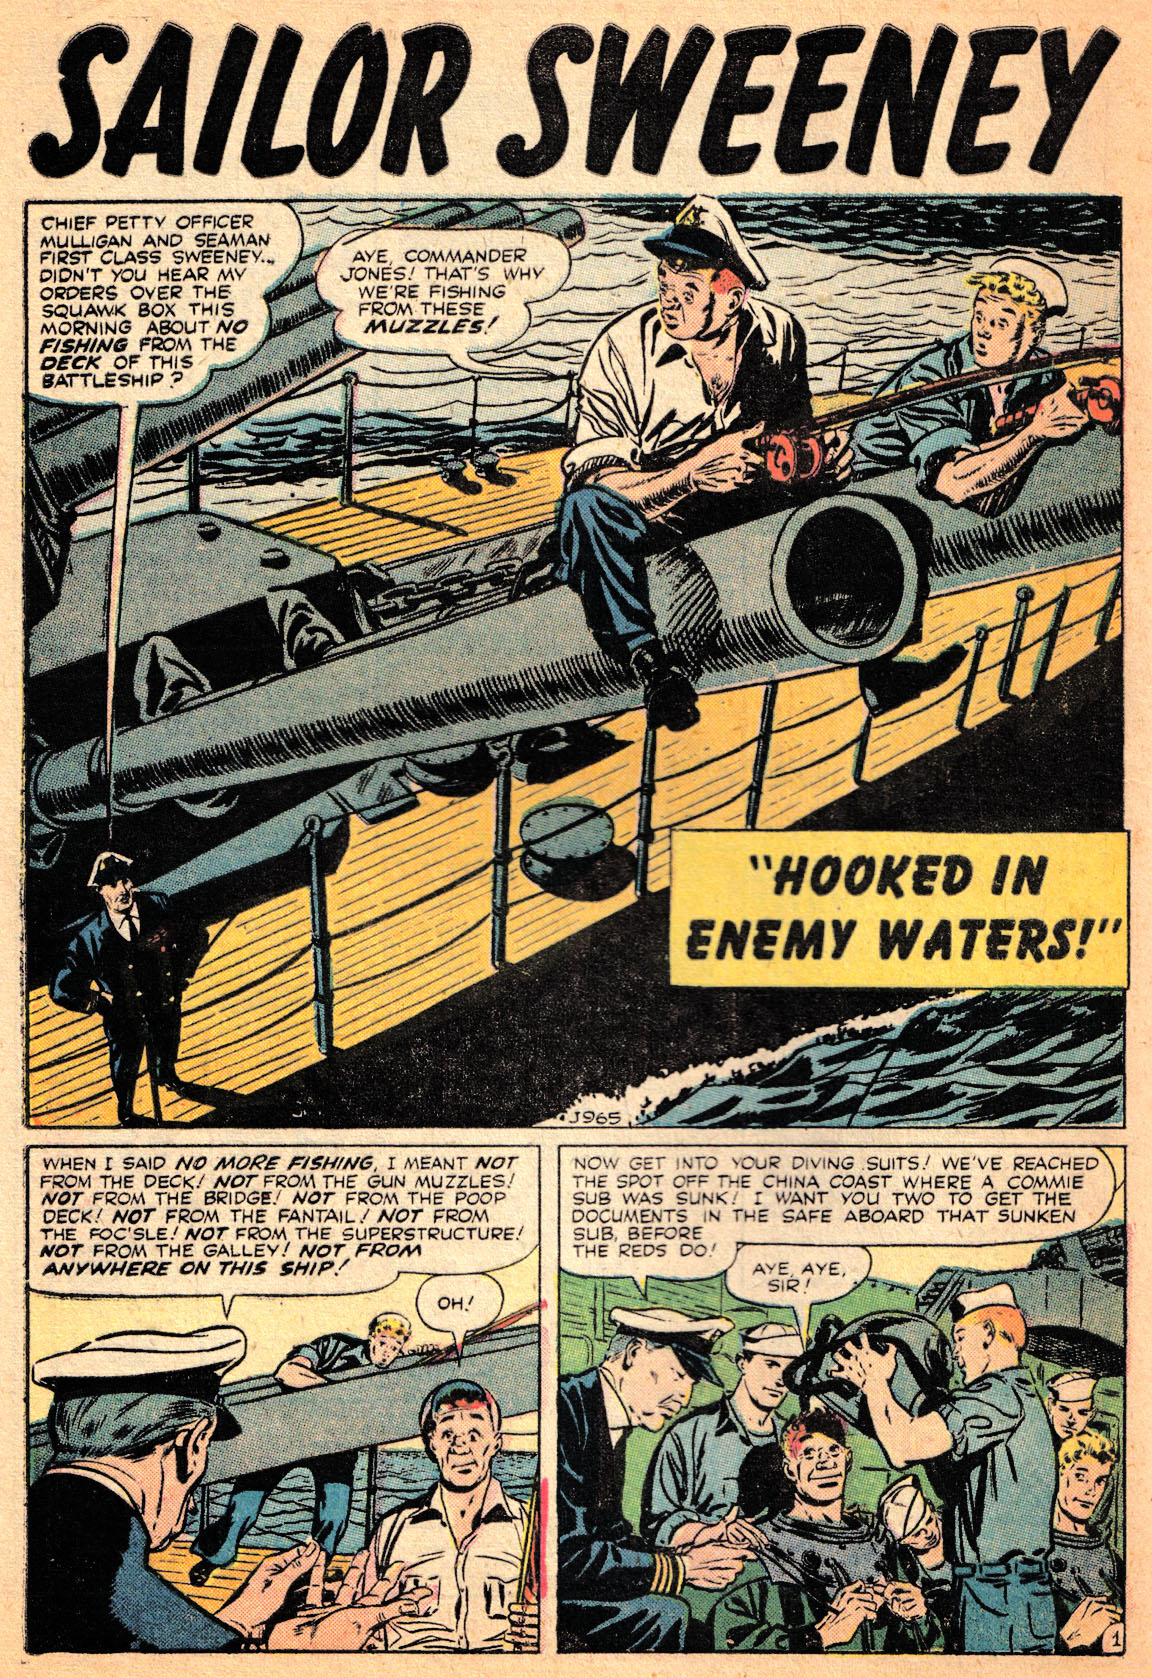 J-965 Hooked in Enemy Waters! Page 1